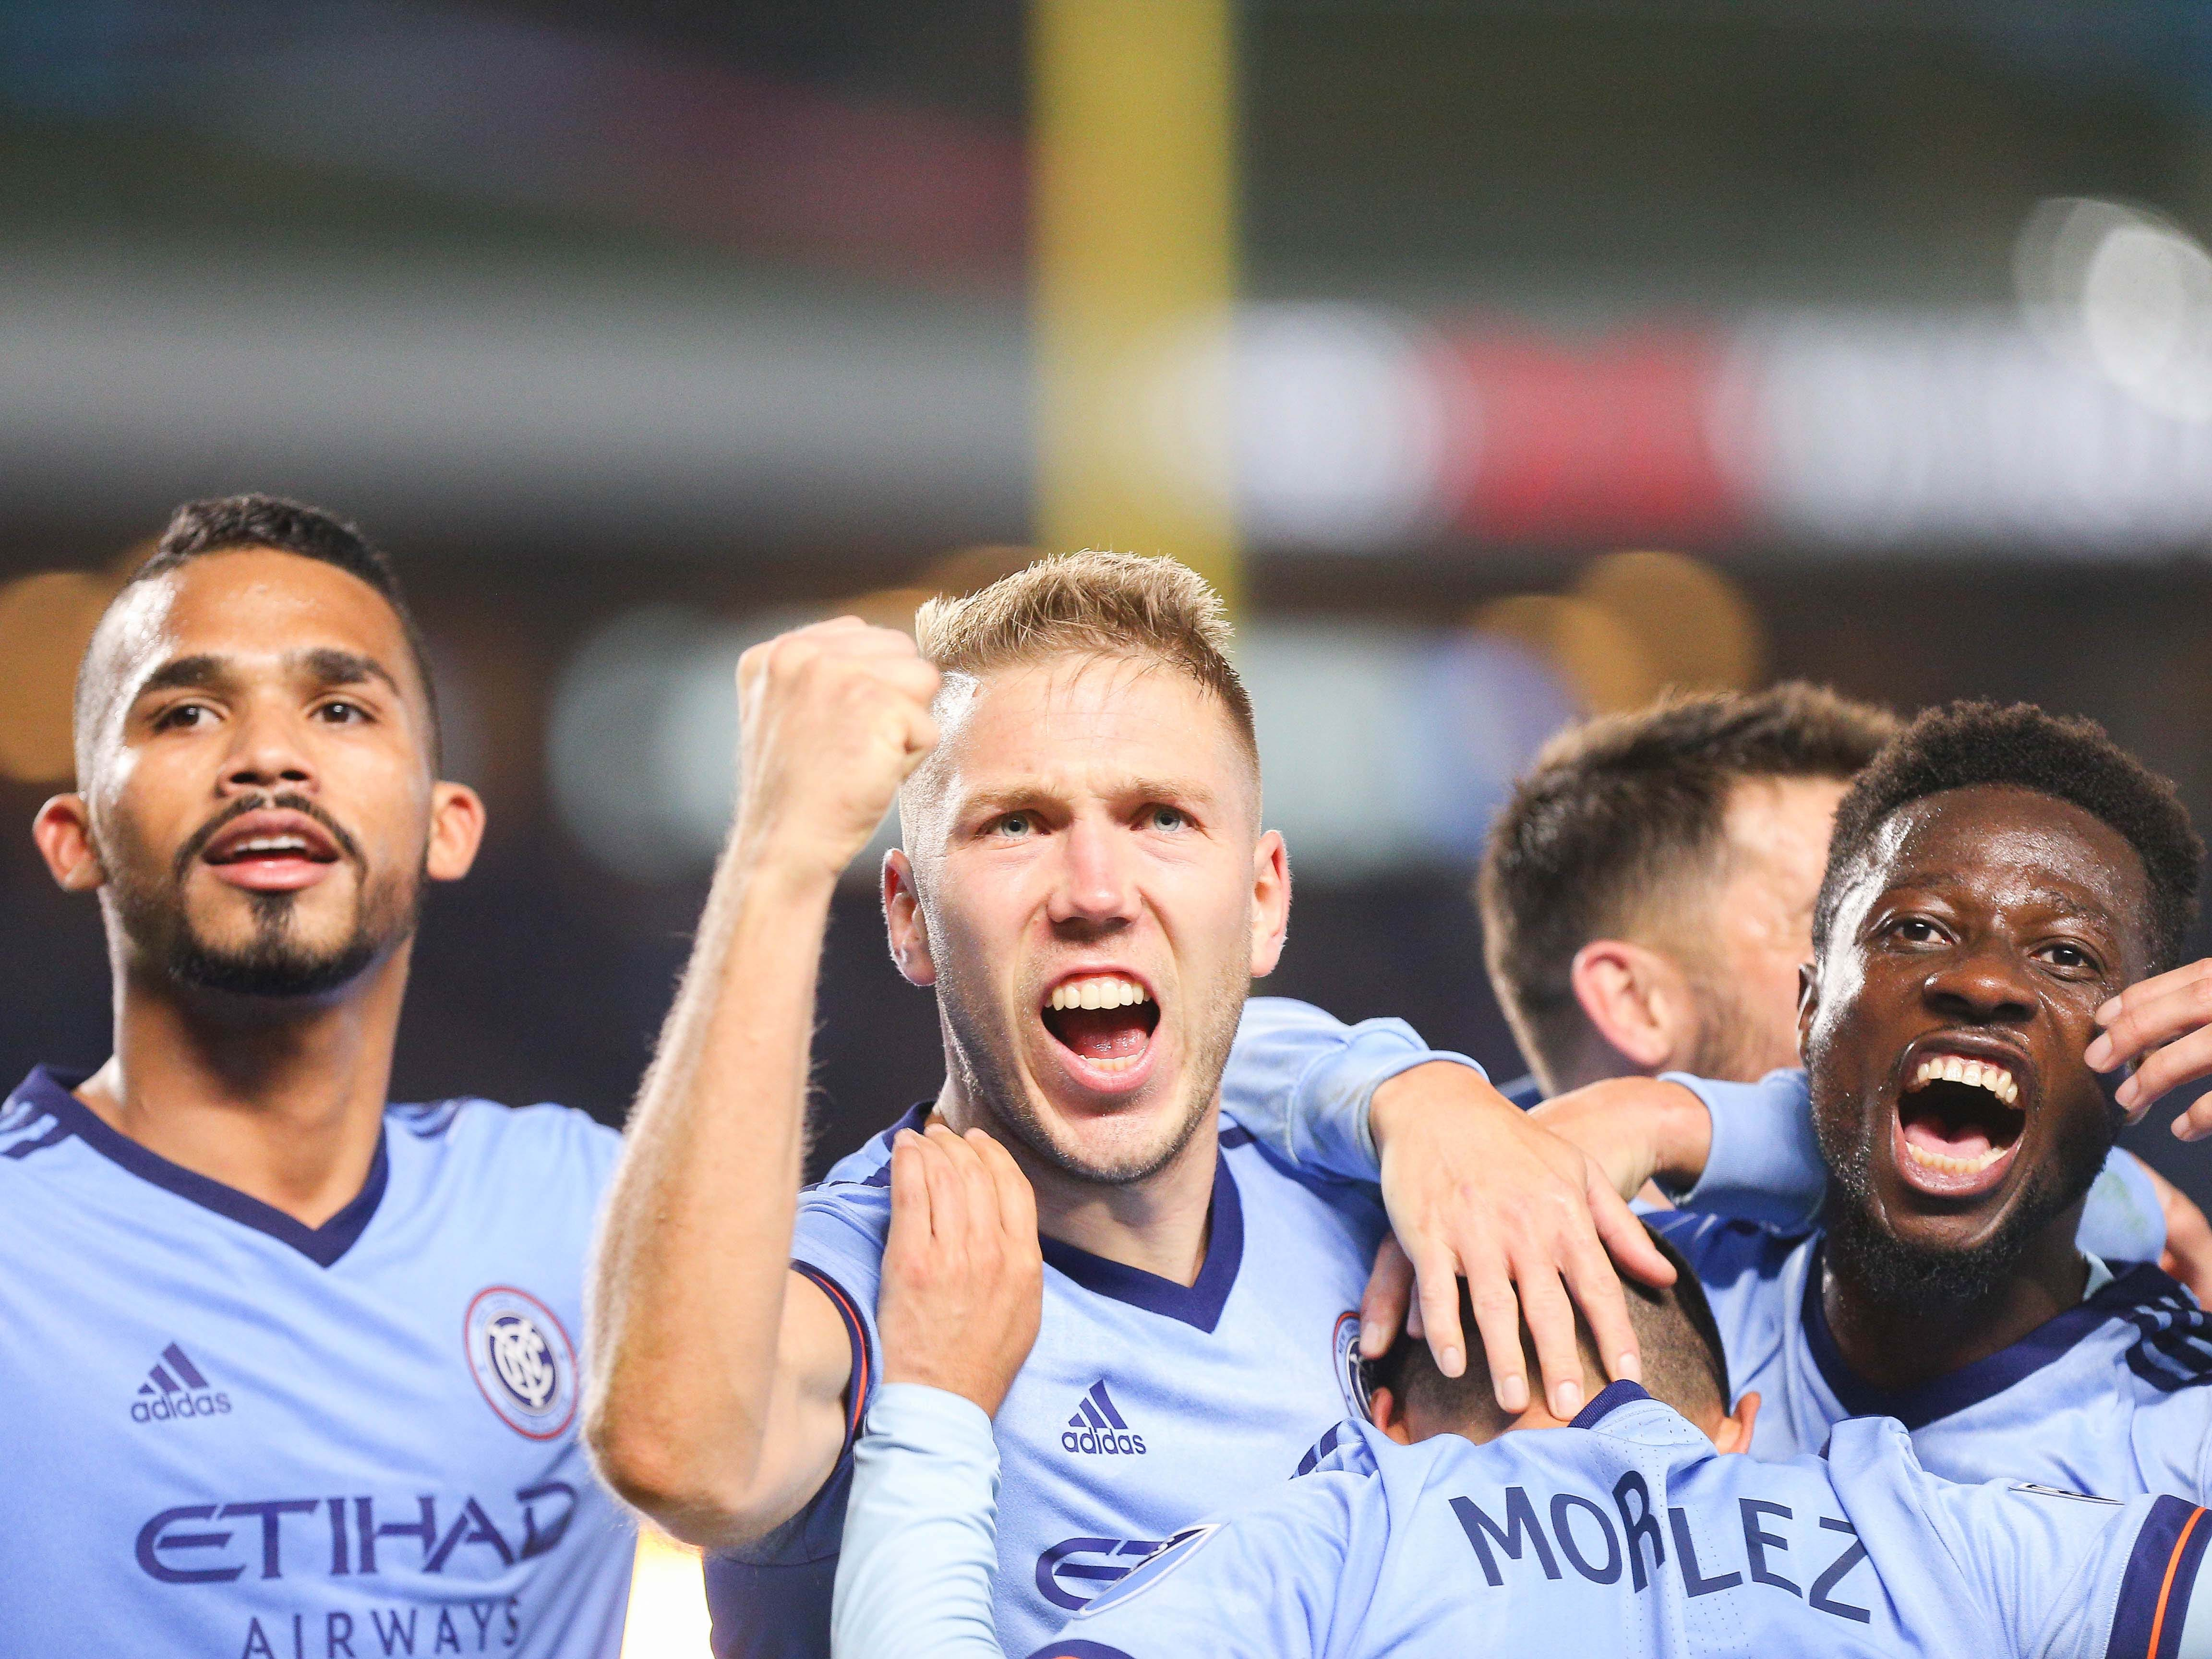 New York City FC players celebrate a goal during the second half against the Philadelphia Union at Yankee Stadium. NYCFC won the game, 3-1.